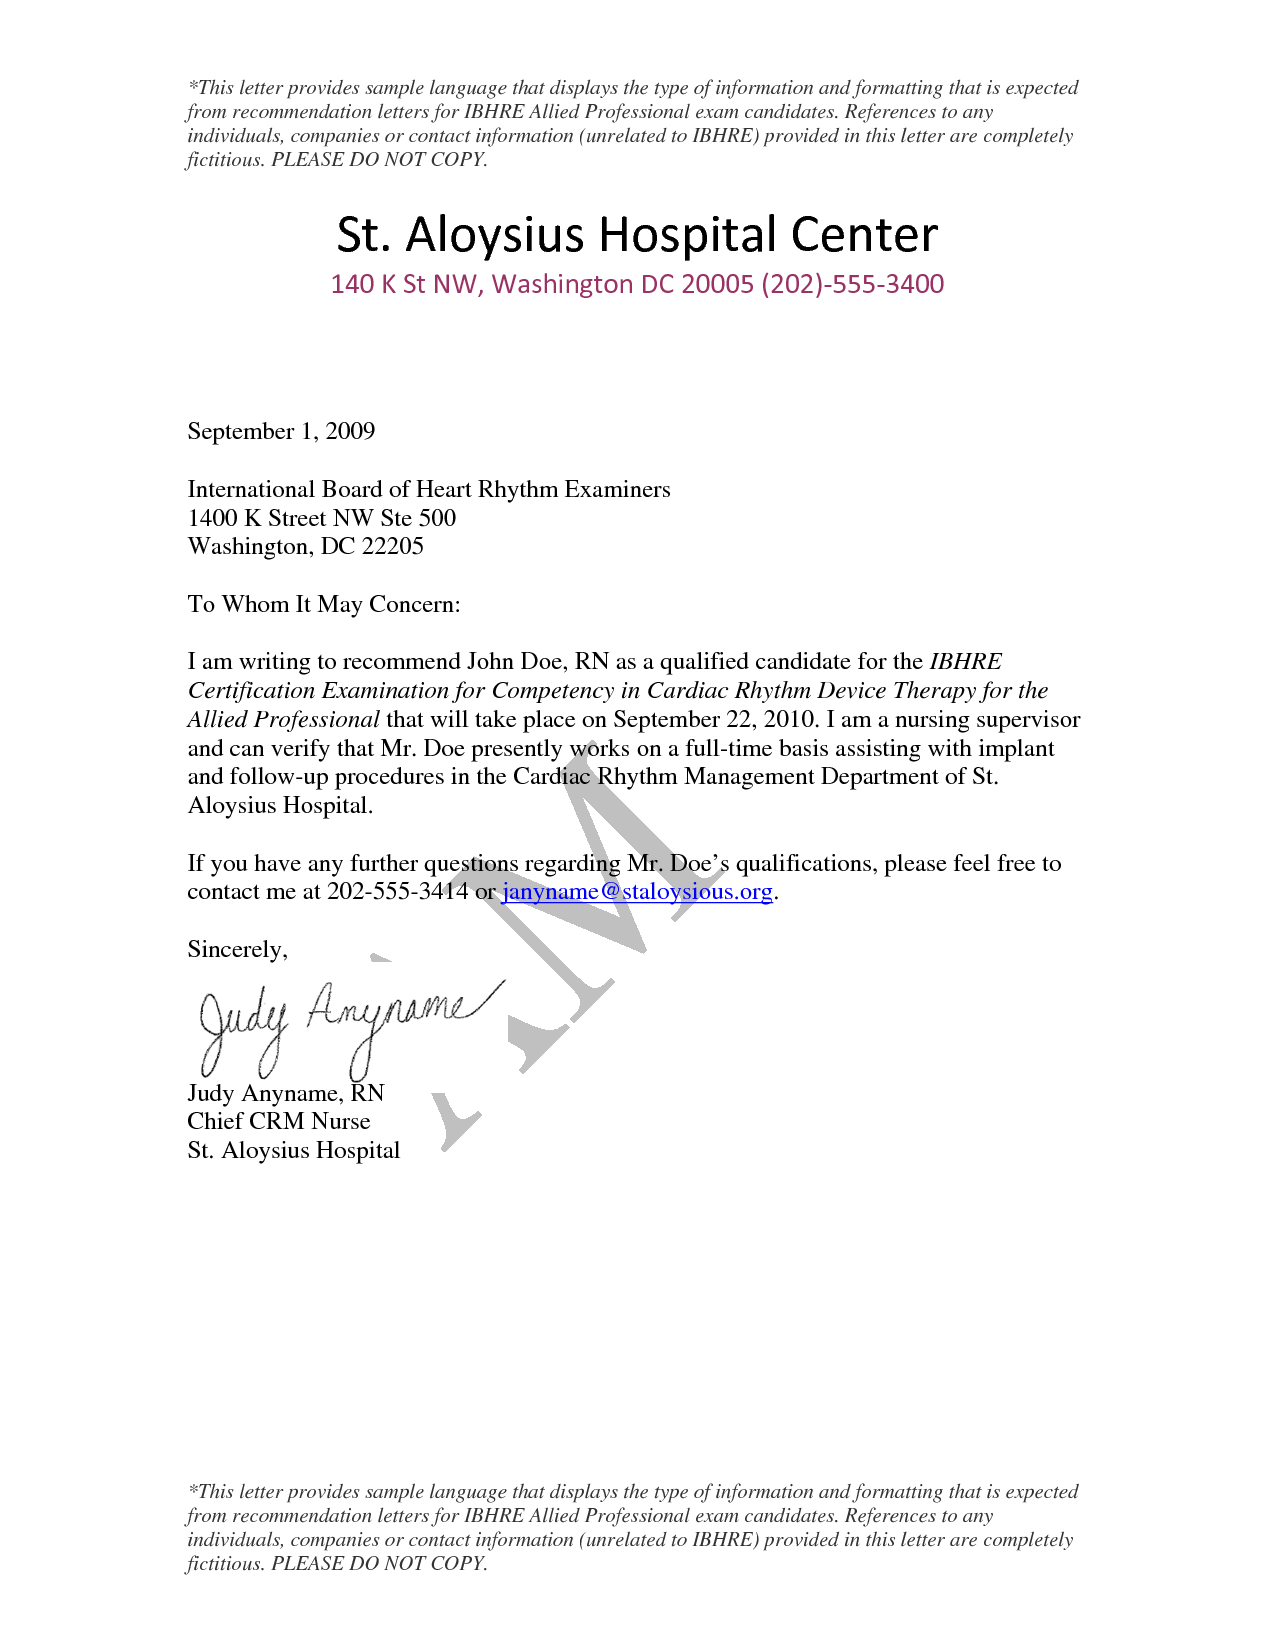 Letters+of+recommendation+samples | Free Sample Letters Of Recommendation  For Nurse By  Free Sample Professional Letter Of Recommendation